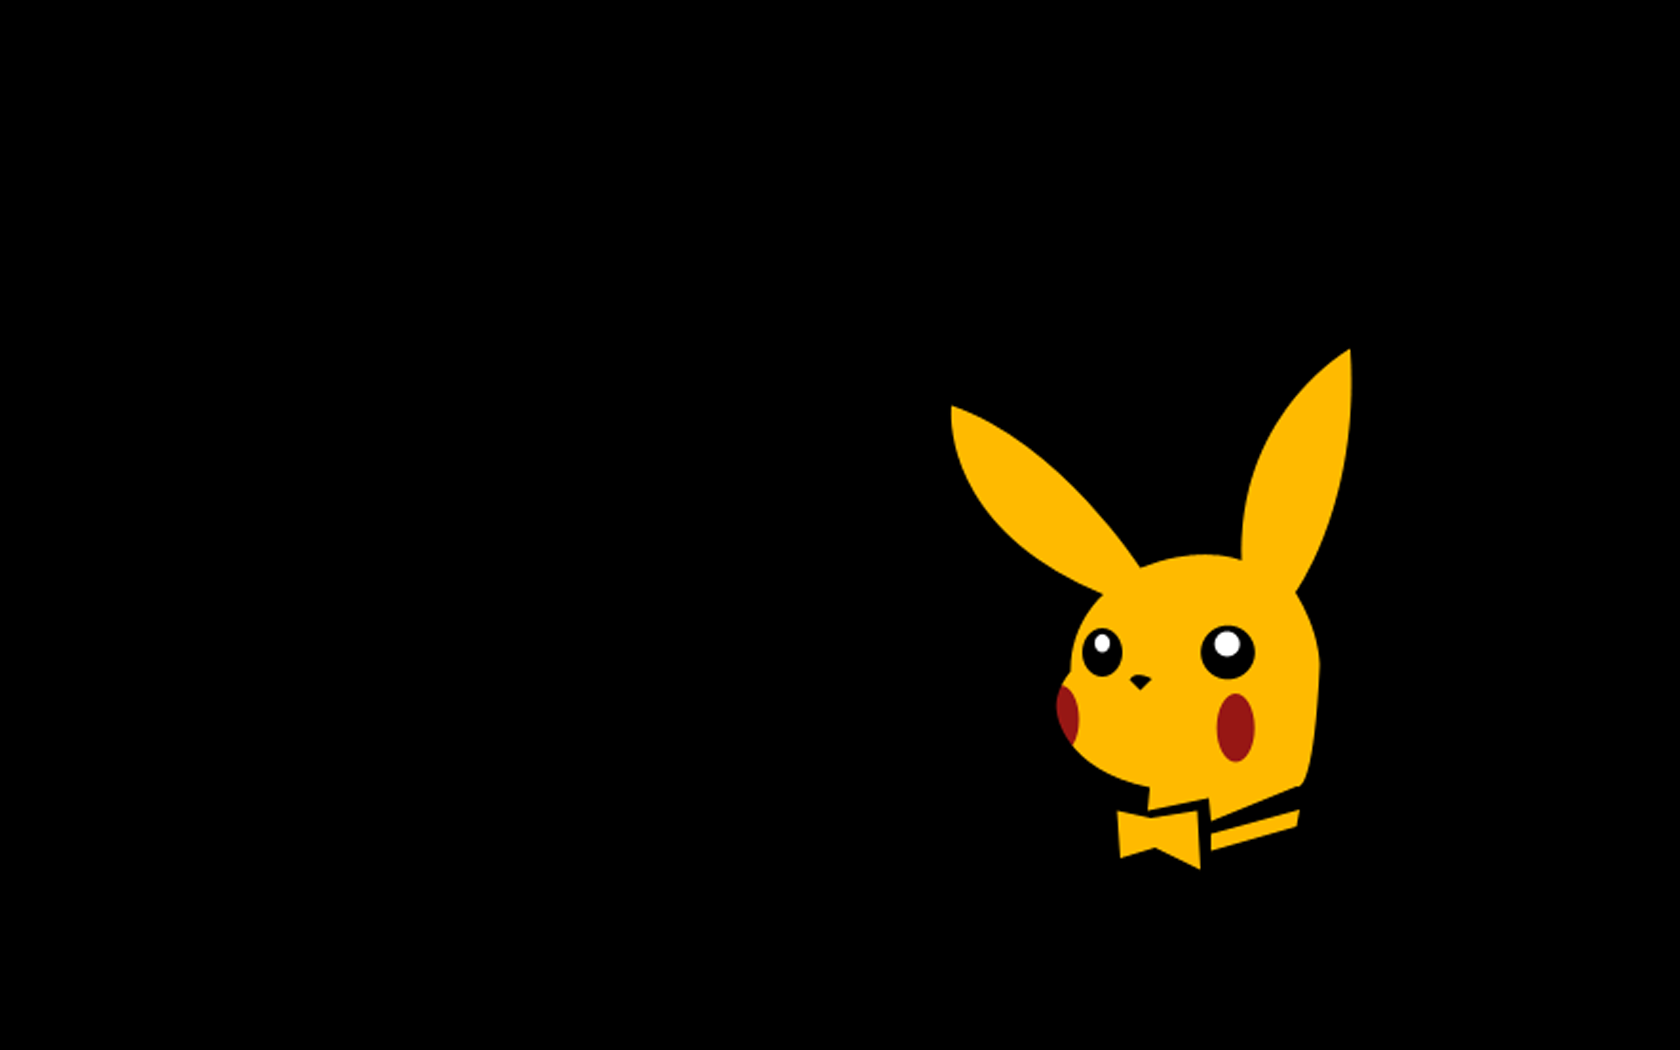 Wallpapers of playboy logo